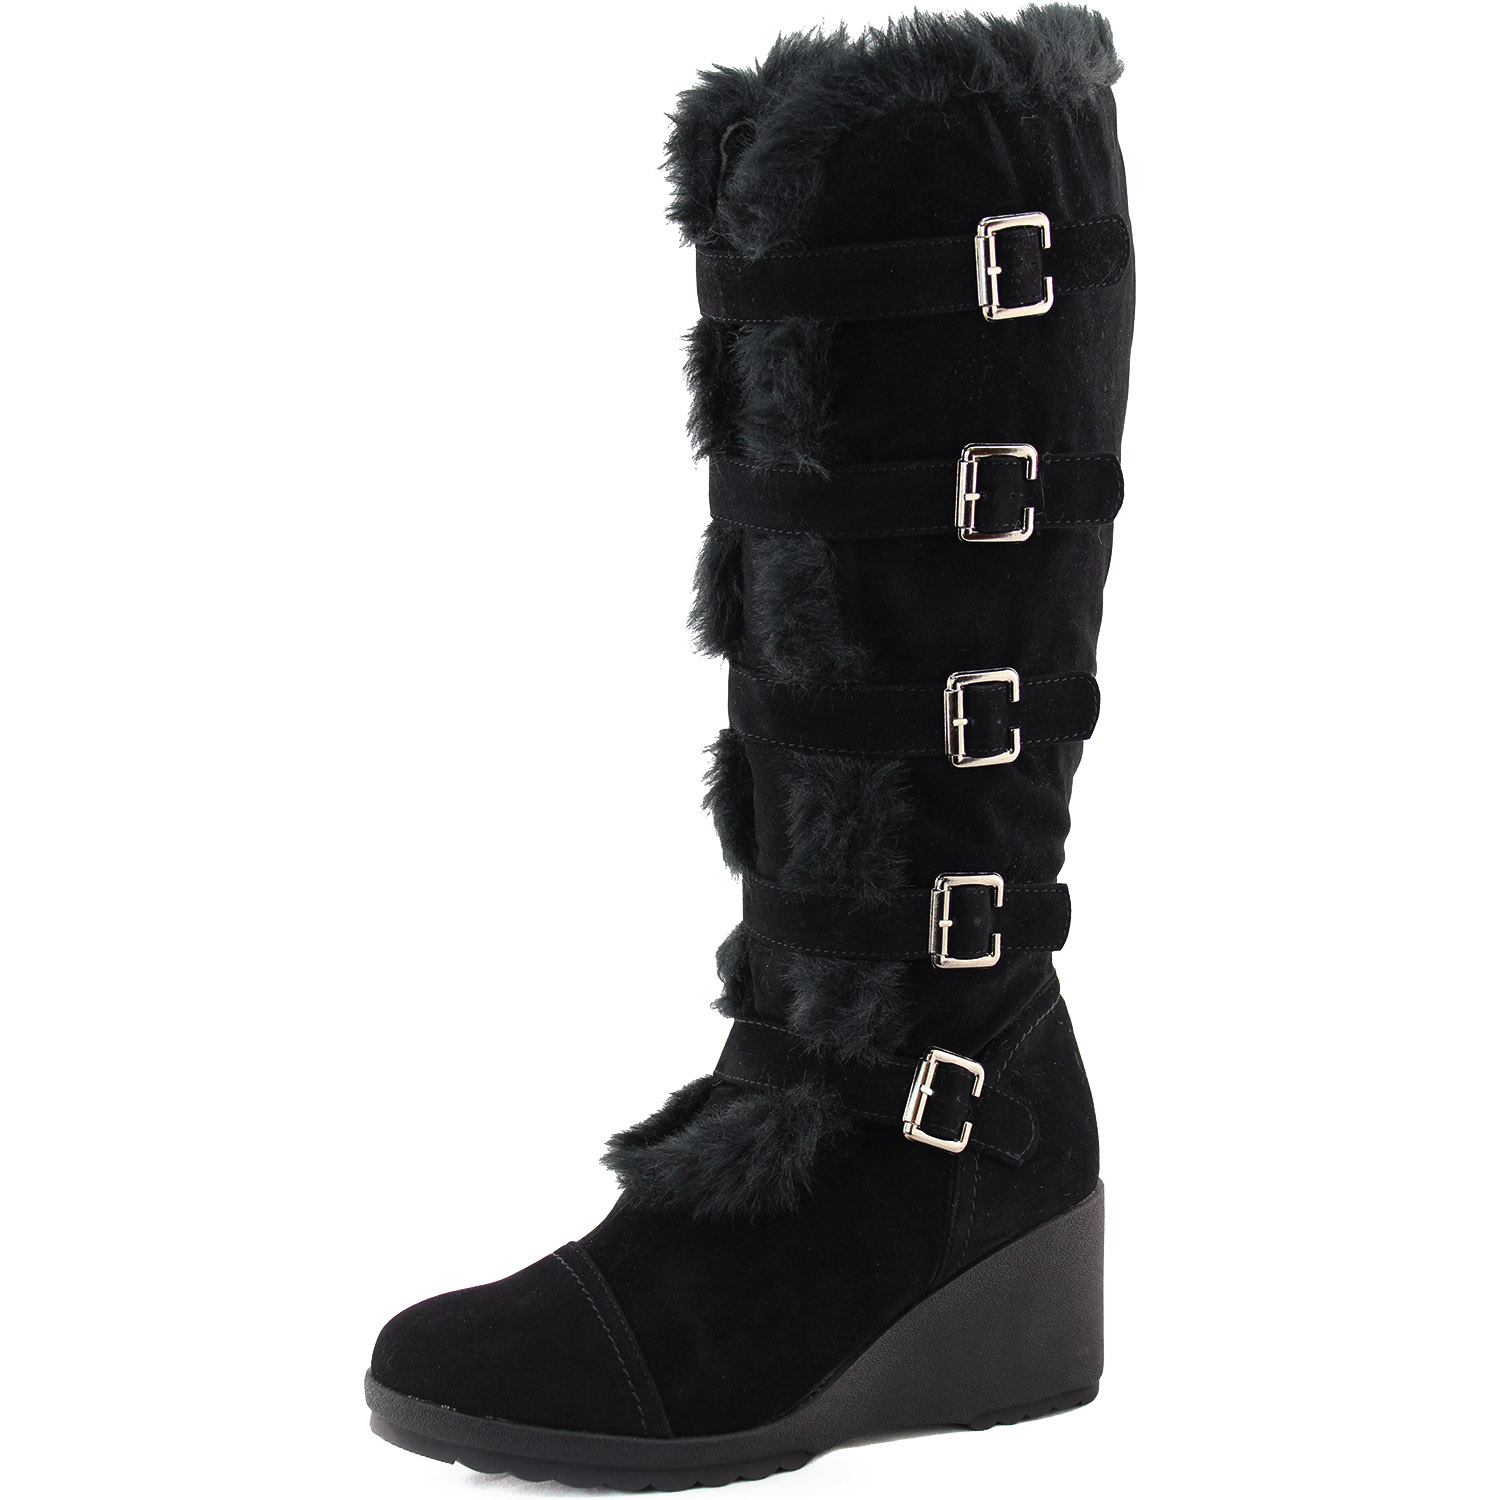 black faux fur mid knee high boots platform wedge heel